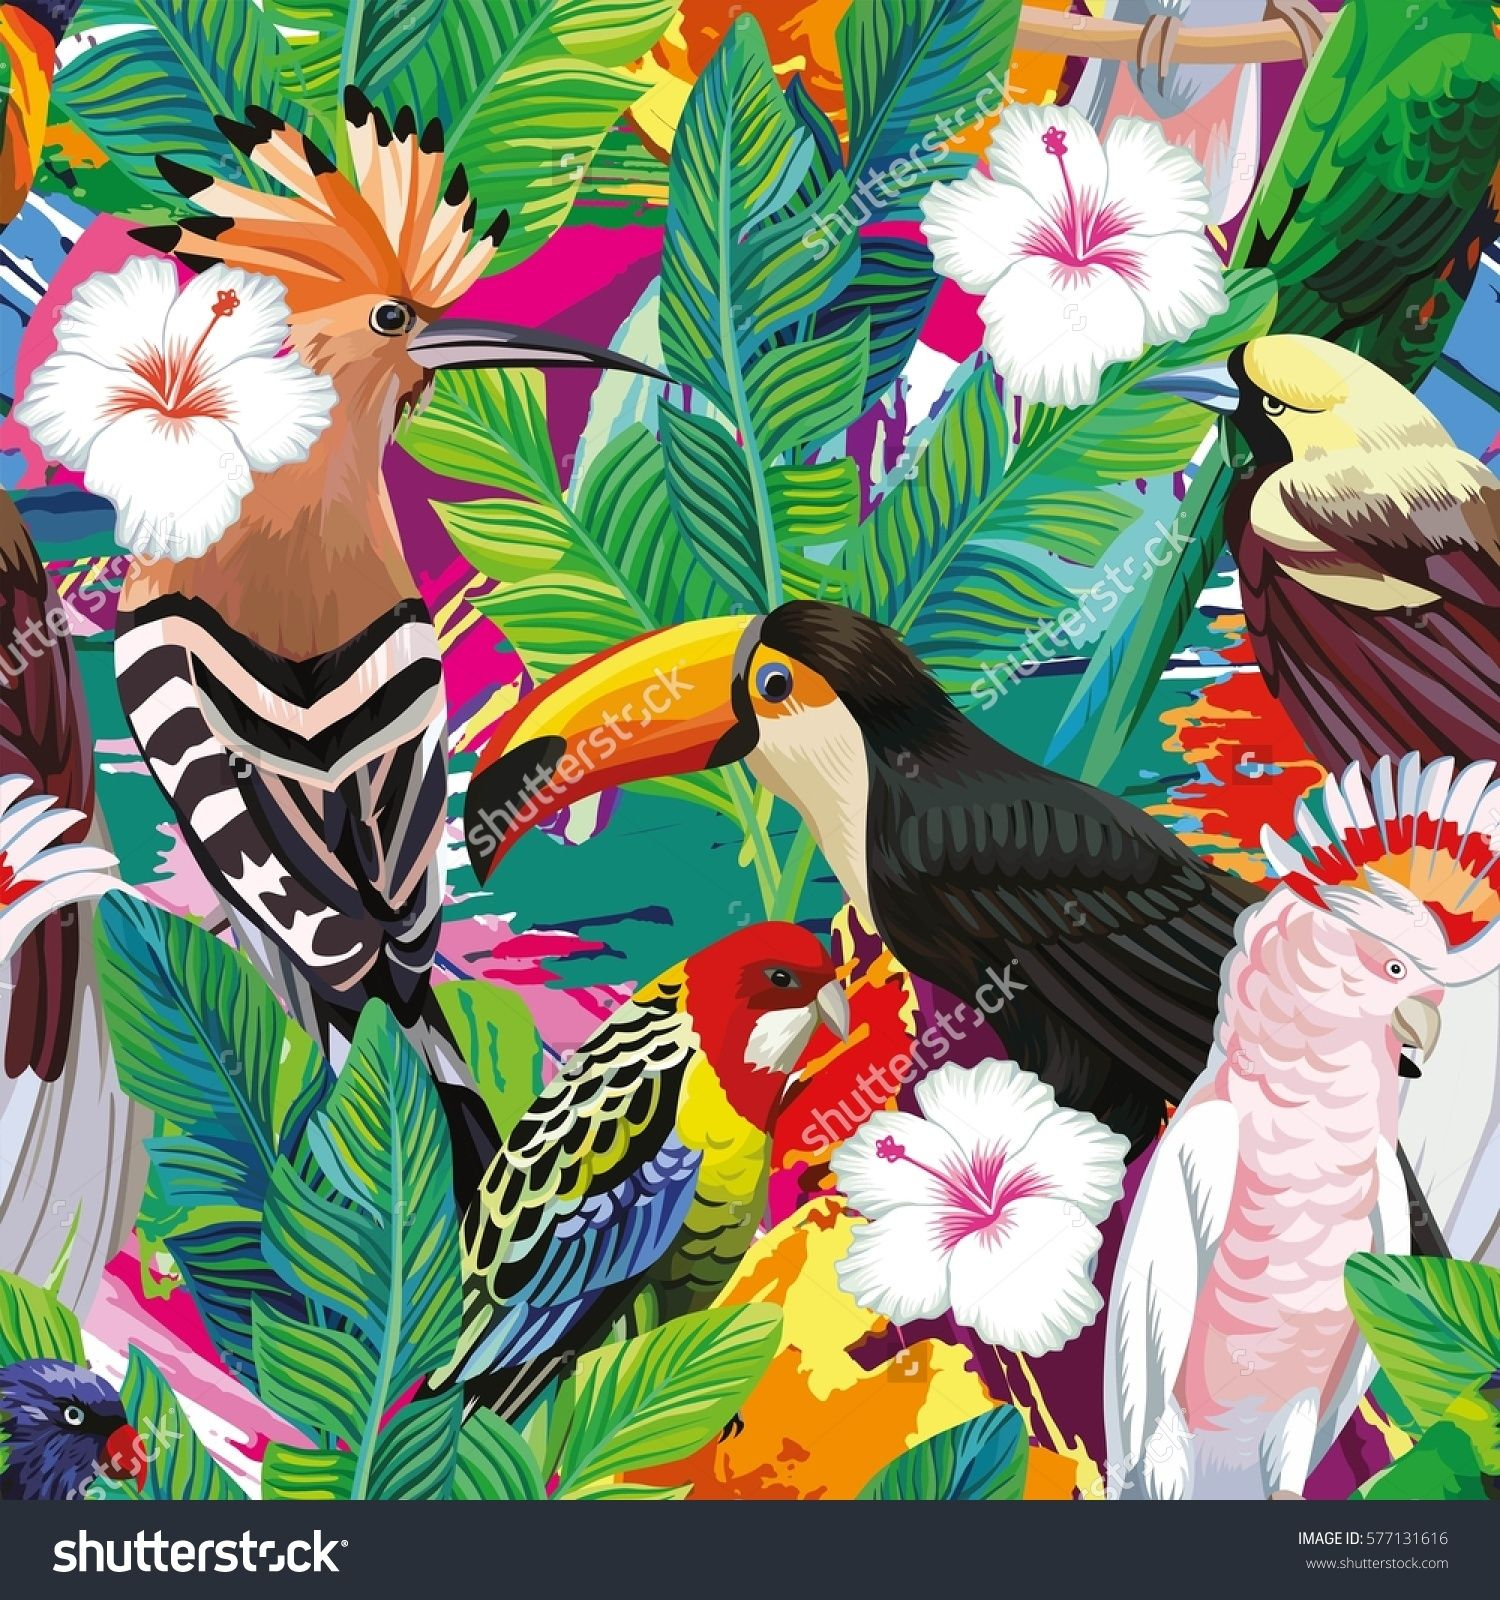 Vintage Style Tropical Bird And Flowers Background: Seamless A Composition Of Tropical Bird Toucan, Parrot